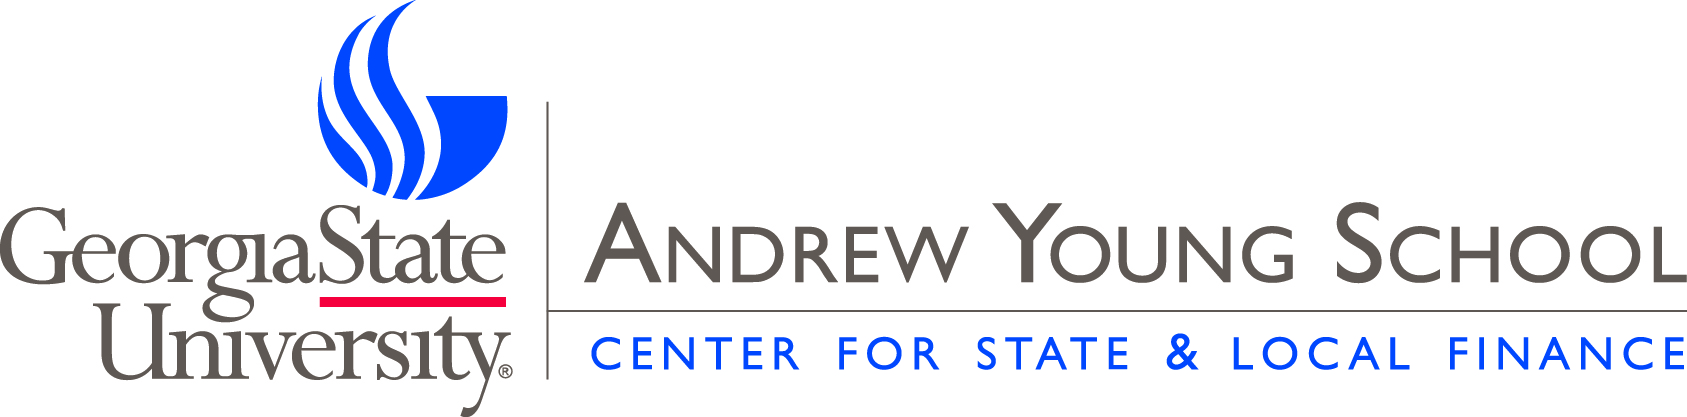 Georgia State University's Andrew Young School of Policy Studies - Center for State and Local Finance Logo